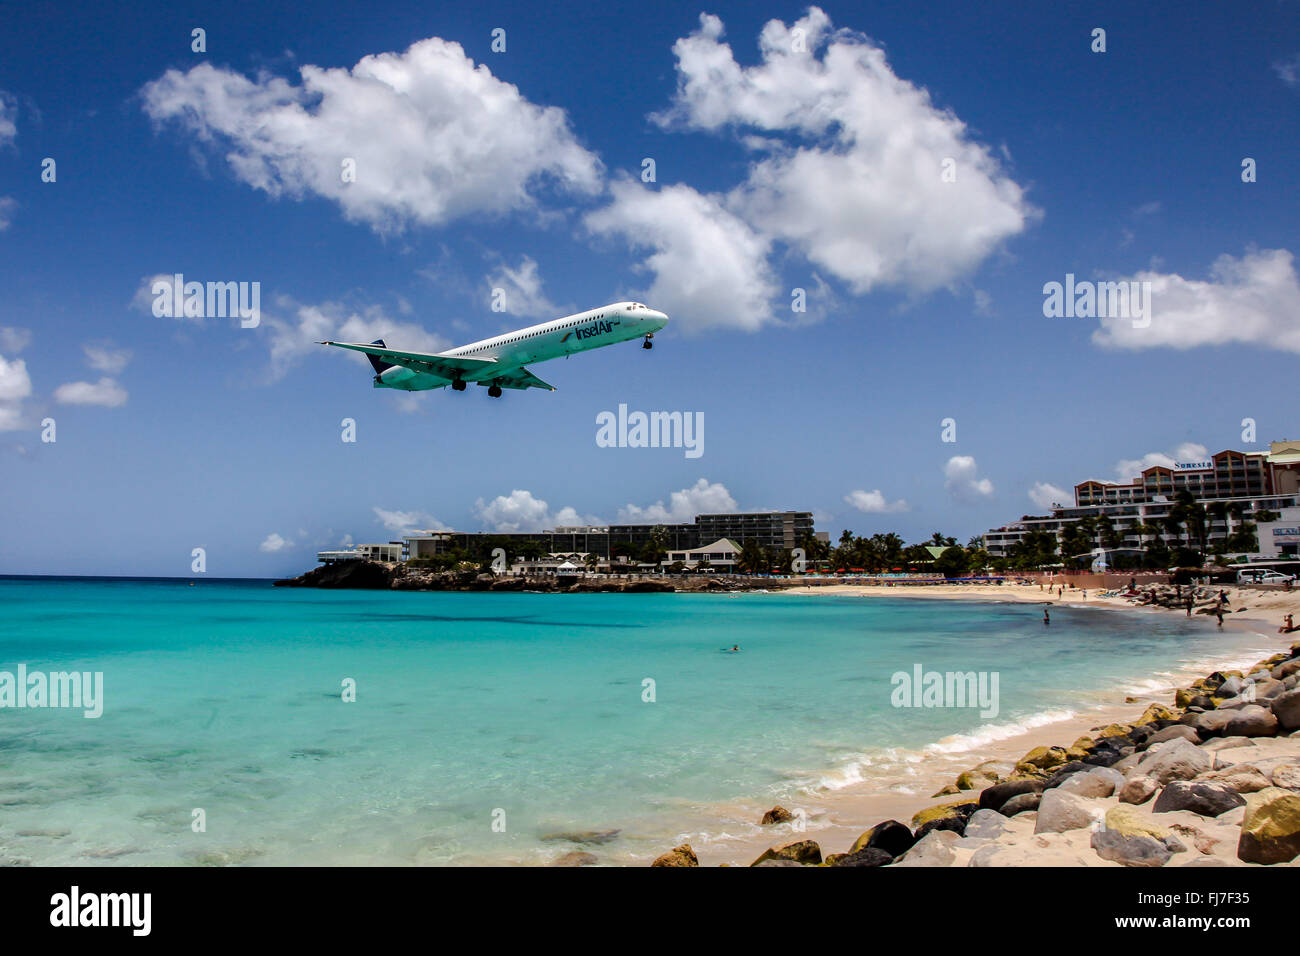 Aeroplano Insel Air è lo sbarco su Princess Juliana International Airport a San Martin su Maho Bye Beach Immagini Stock